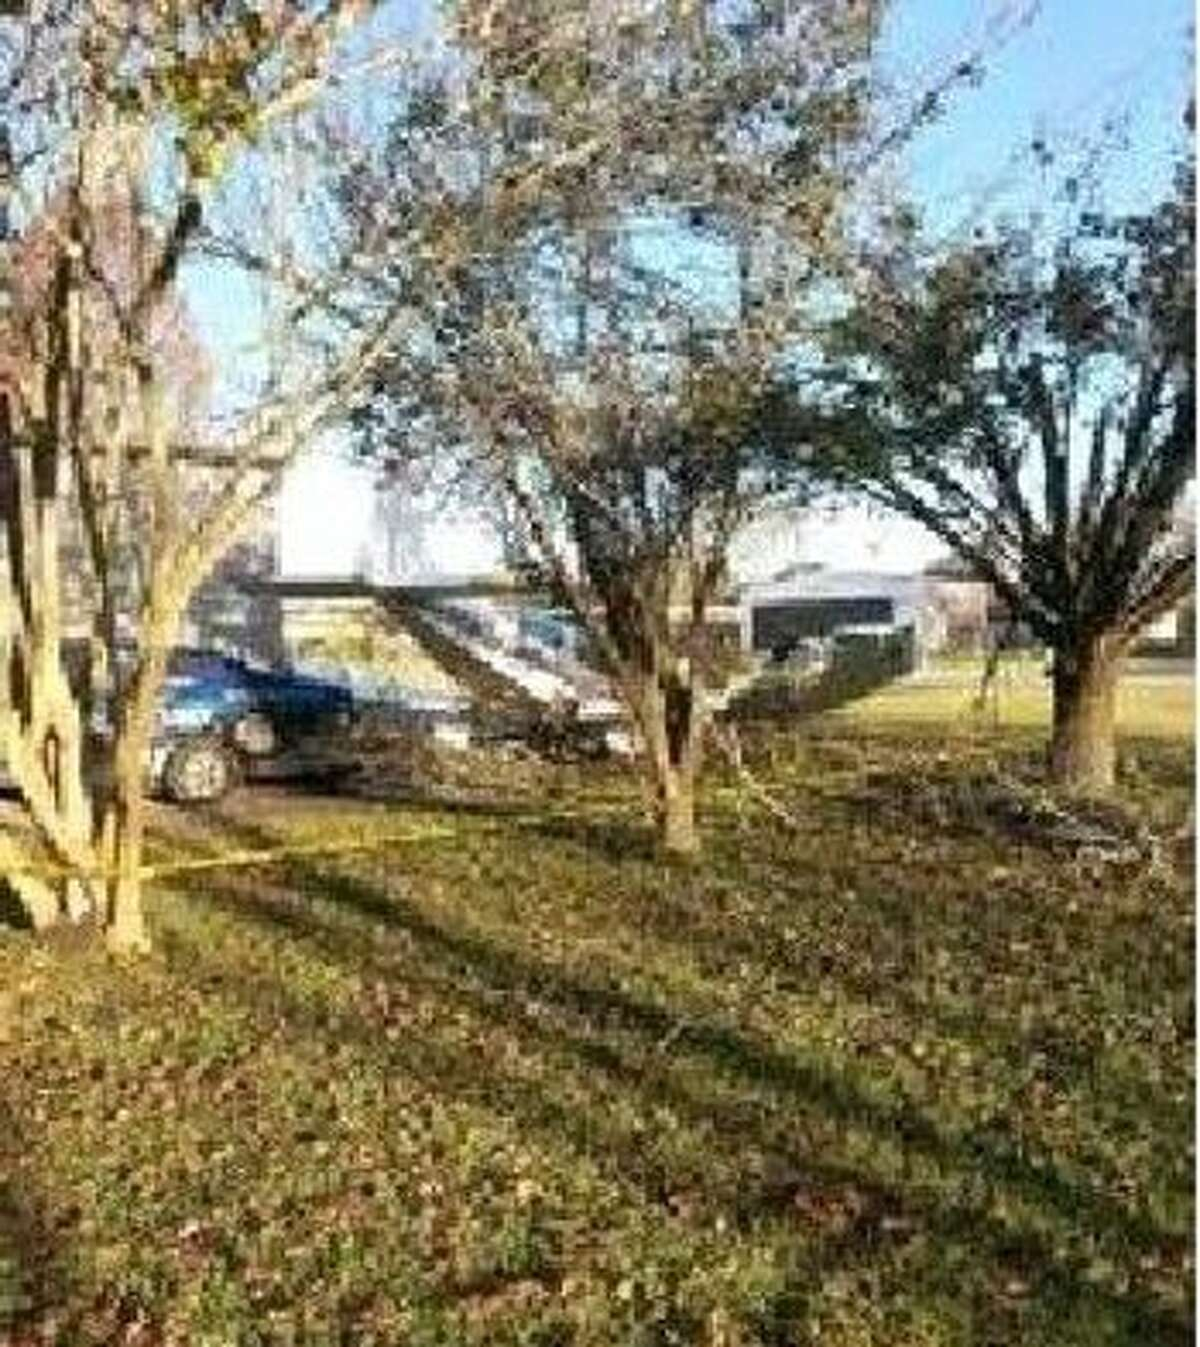 Texas Department of Public Safety Troopers and Friendswood Police were busy investigating a small plane crash Thursday (Dec. 17).